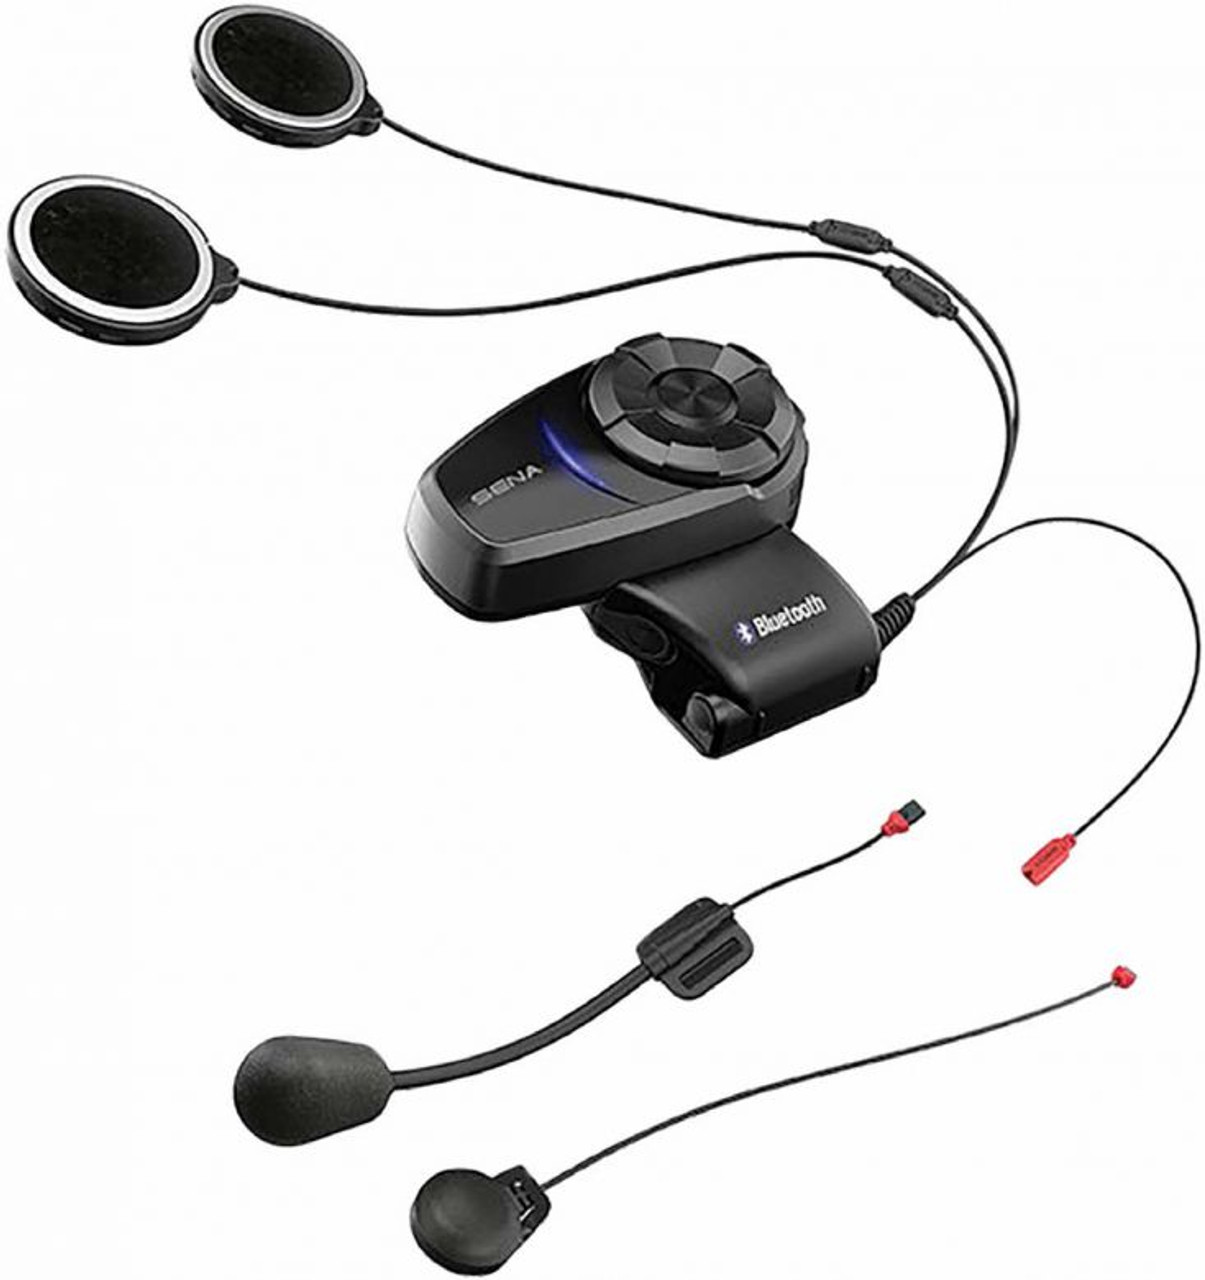 Sena 10s Bluetooth Headset Intercom Corded And Boom Mic Single Pack Set Motorcycle Closeouts By Rider Approved Llc